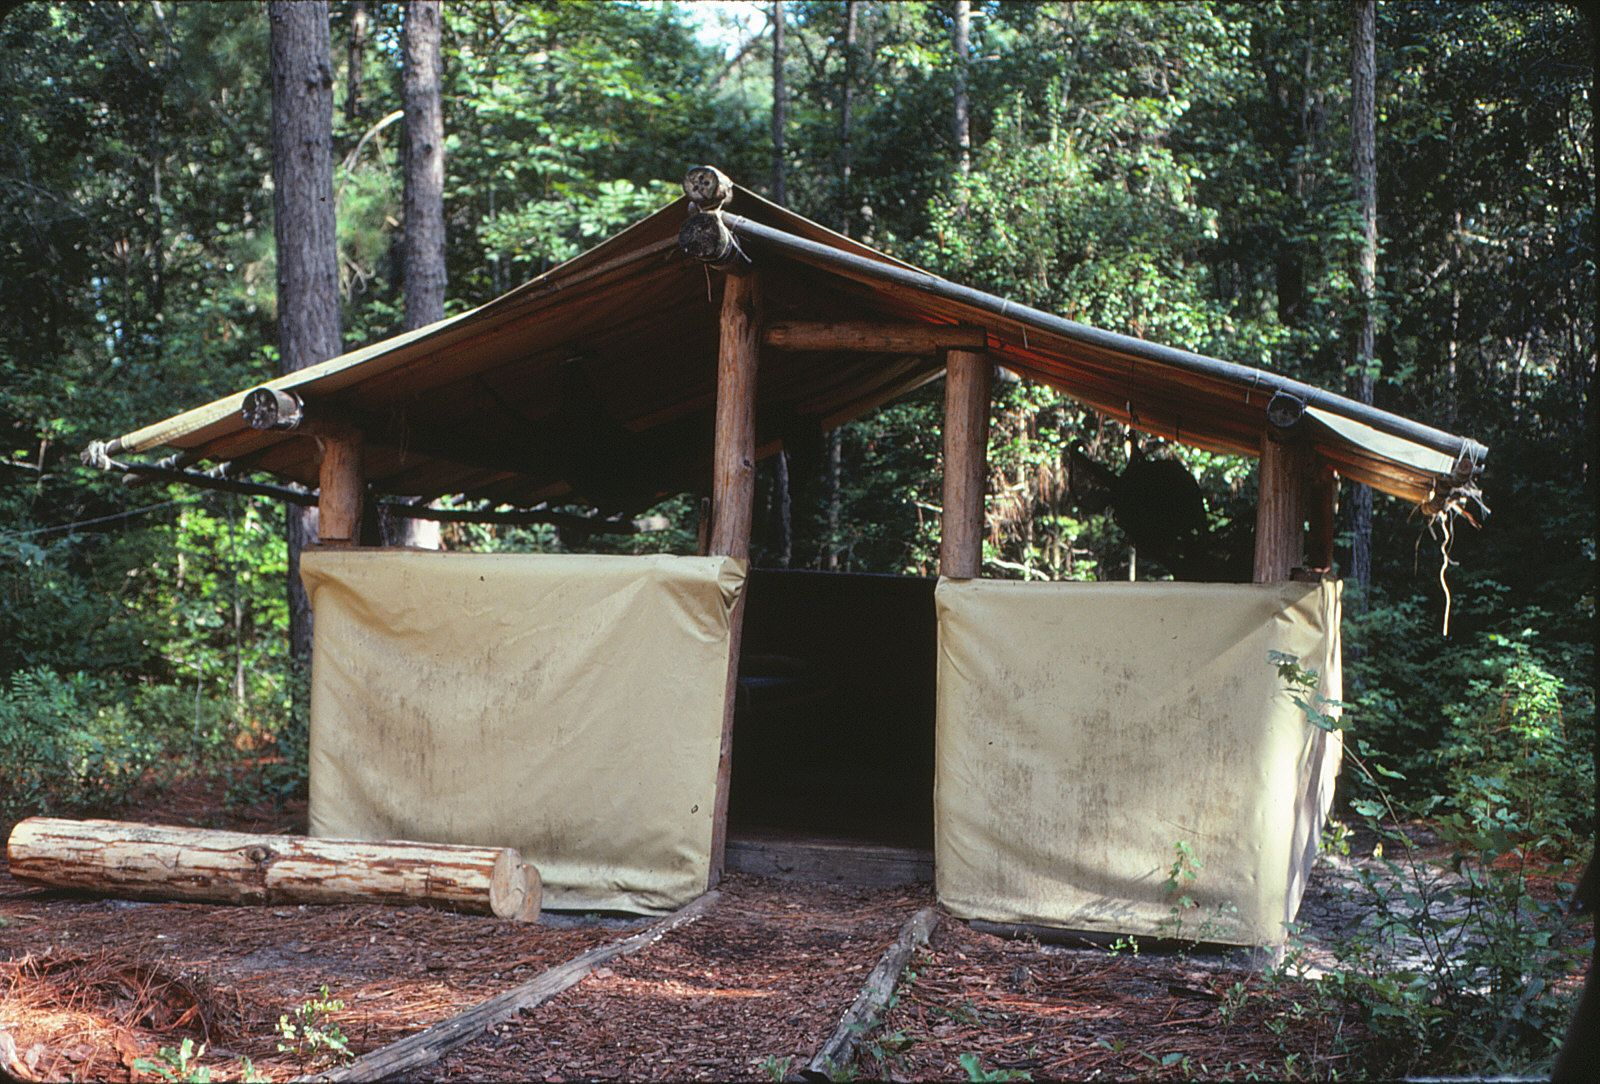 Tent Building- Adirondack Tent The Adirondack tent was akin to the forester yet & Tent Building- Adirondack Tent: The Adirondack tent was akin to ...